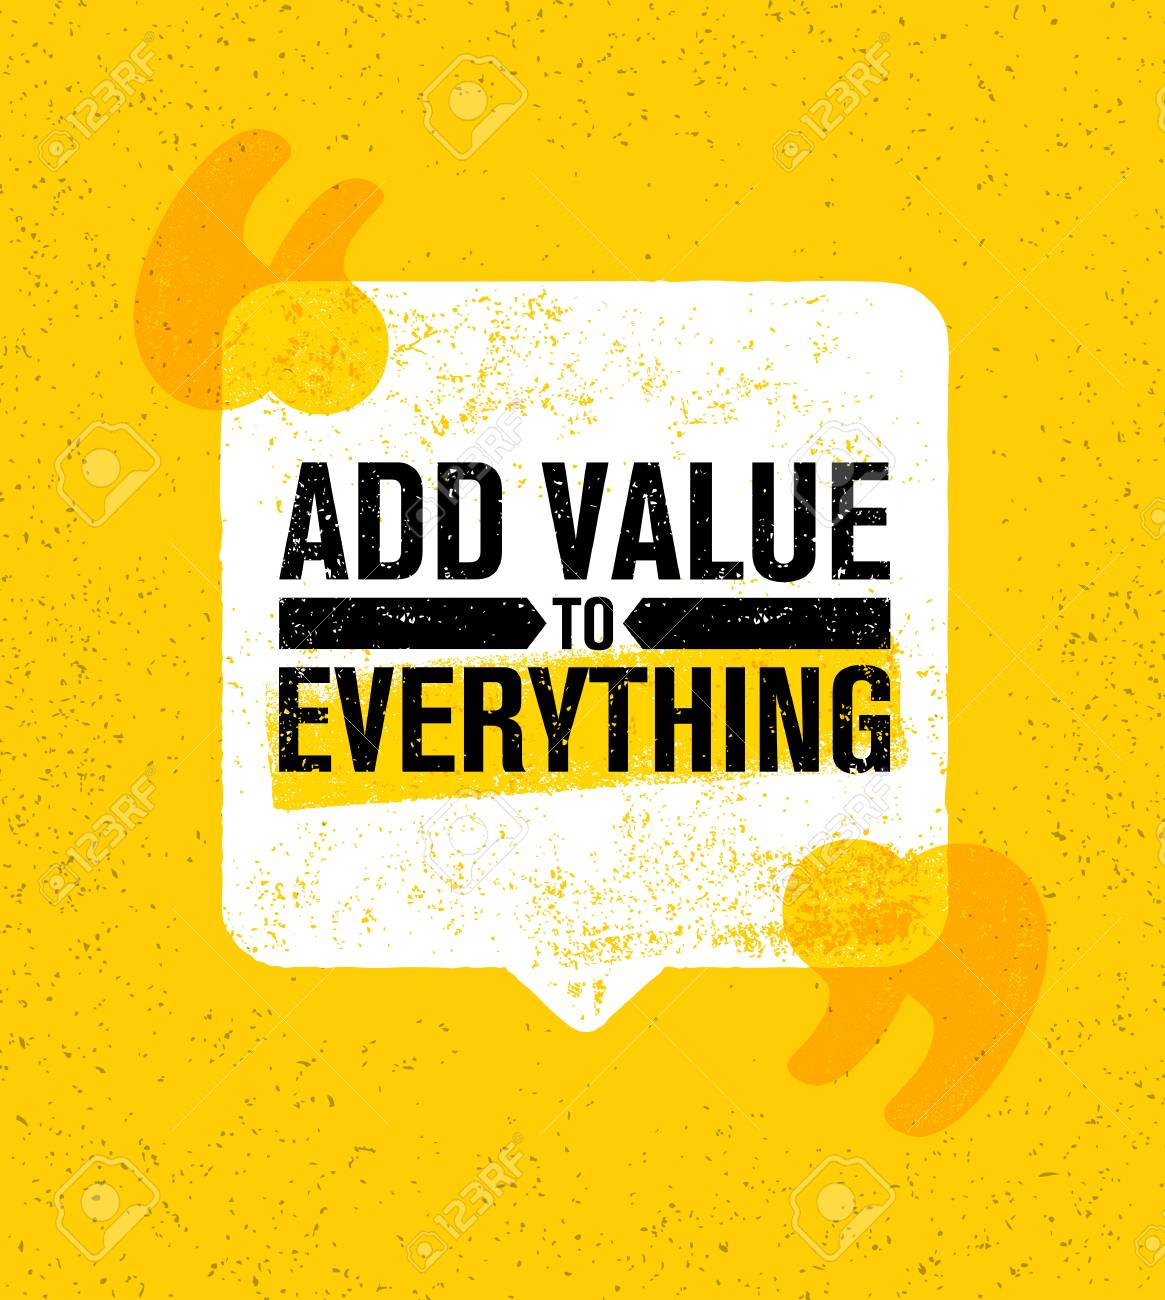 Add Value To Everything. Inspiring Creative Motivation Quote Poster Template. Vector Typography Banner Design Concept. - 88412622